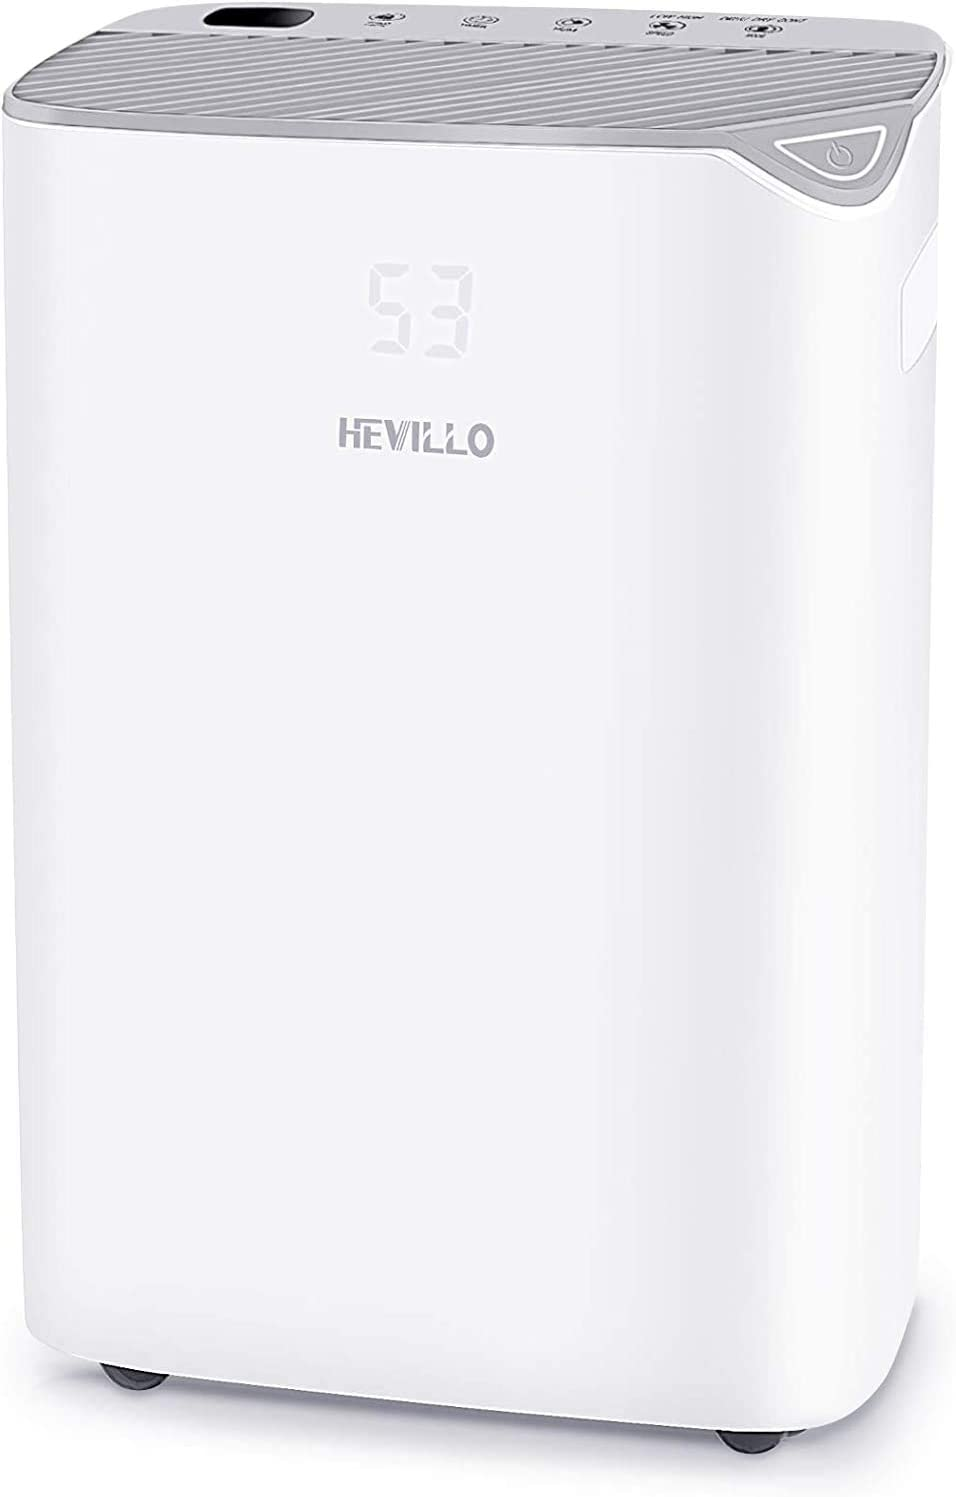 HEVILLO 2000 Sq. Ft Dehumidifier for Home Basements Bedroom Garage, with Continuous Drain Hose and Wheel, 0.66 Gallon Water Tank Capacity, Intelligent Humidity Control (Gray)